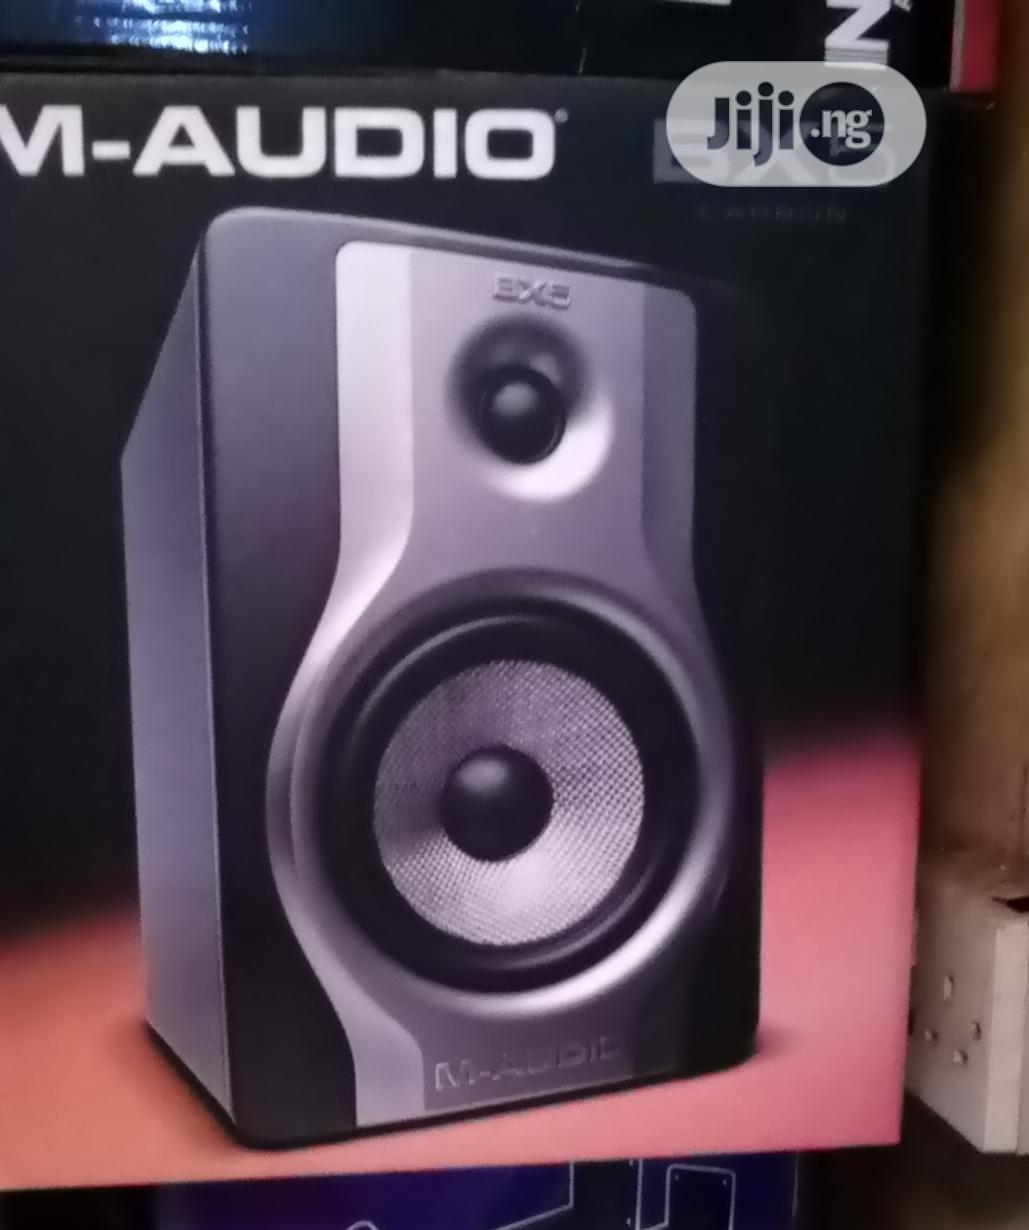 M-audio BX5 Studio Monitor Speaker